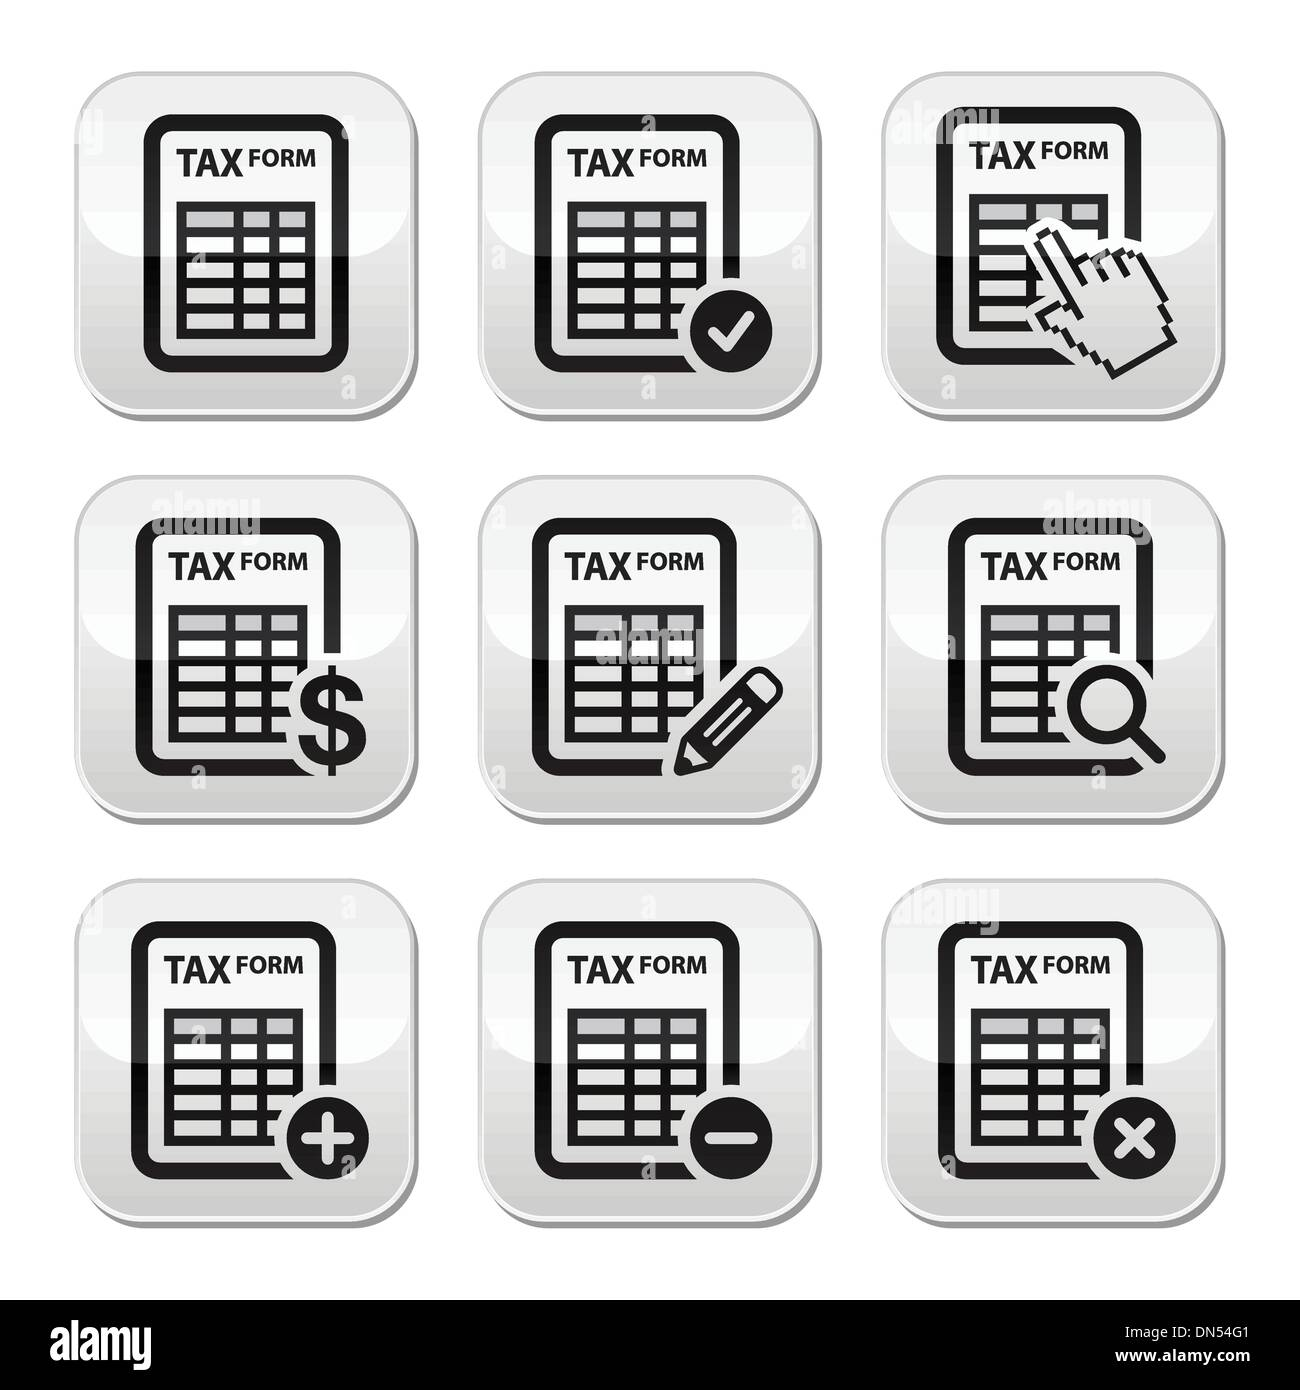 Tax form, taxation, finance vector buttons set - Stock Image